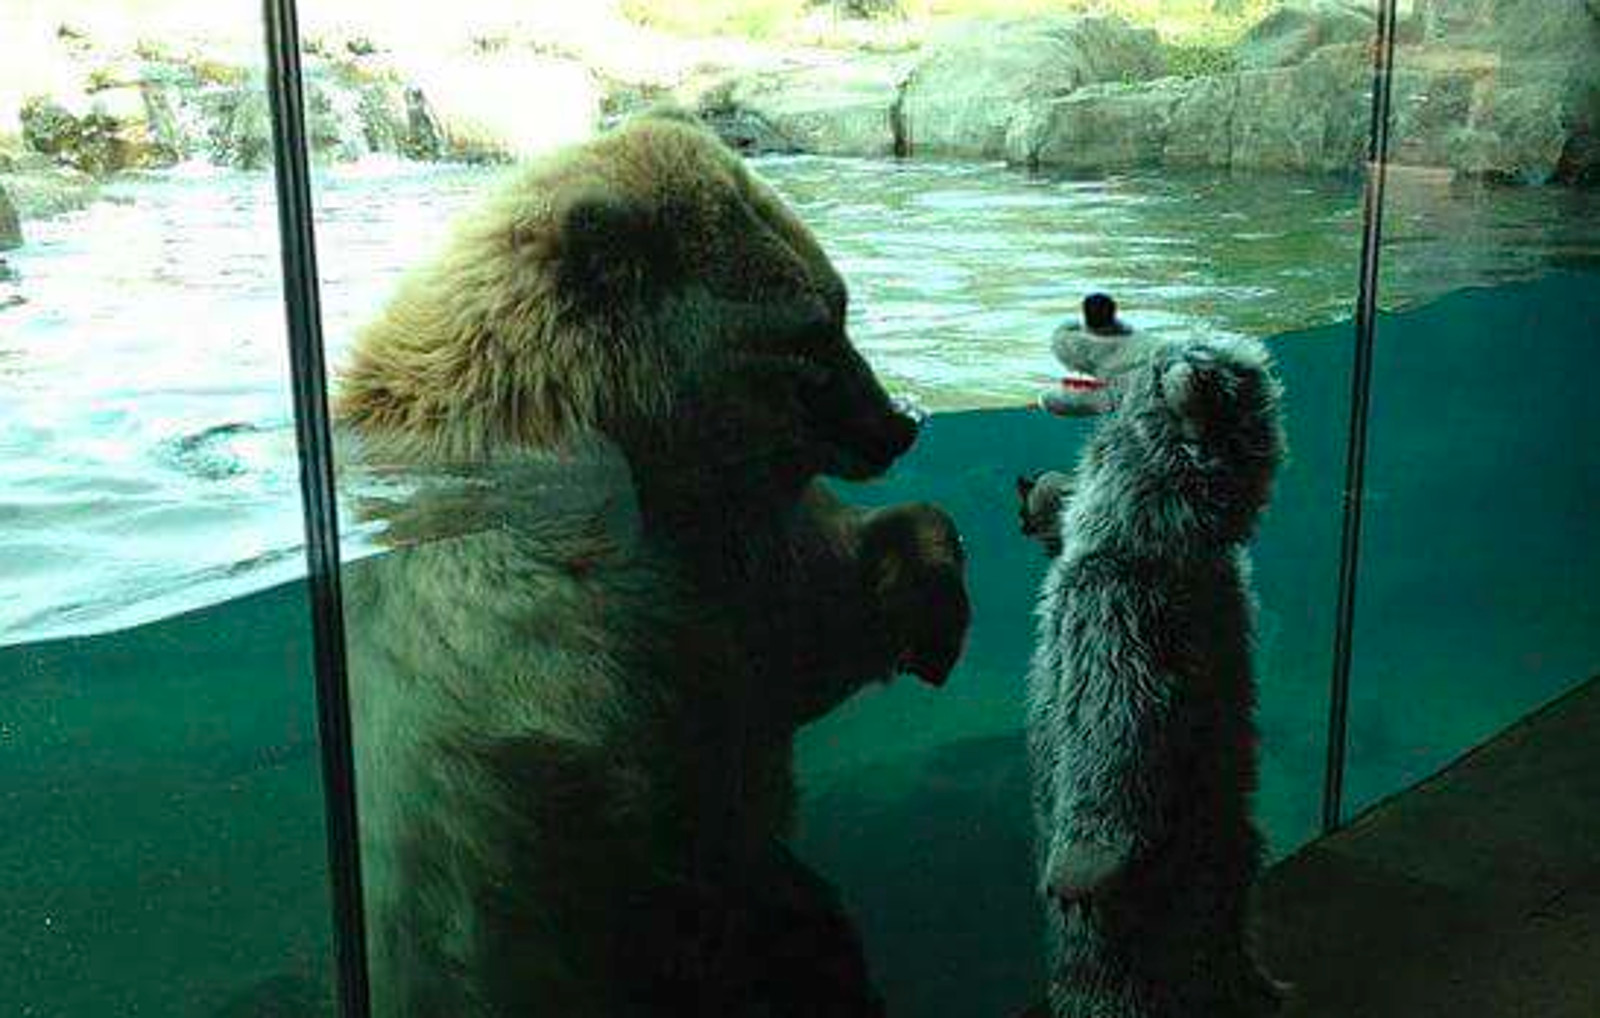 Sad Photo of a Child Meeting a Captive Bear Shows us That This is NOT How Kids Should Experience Animals